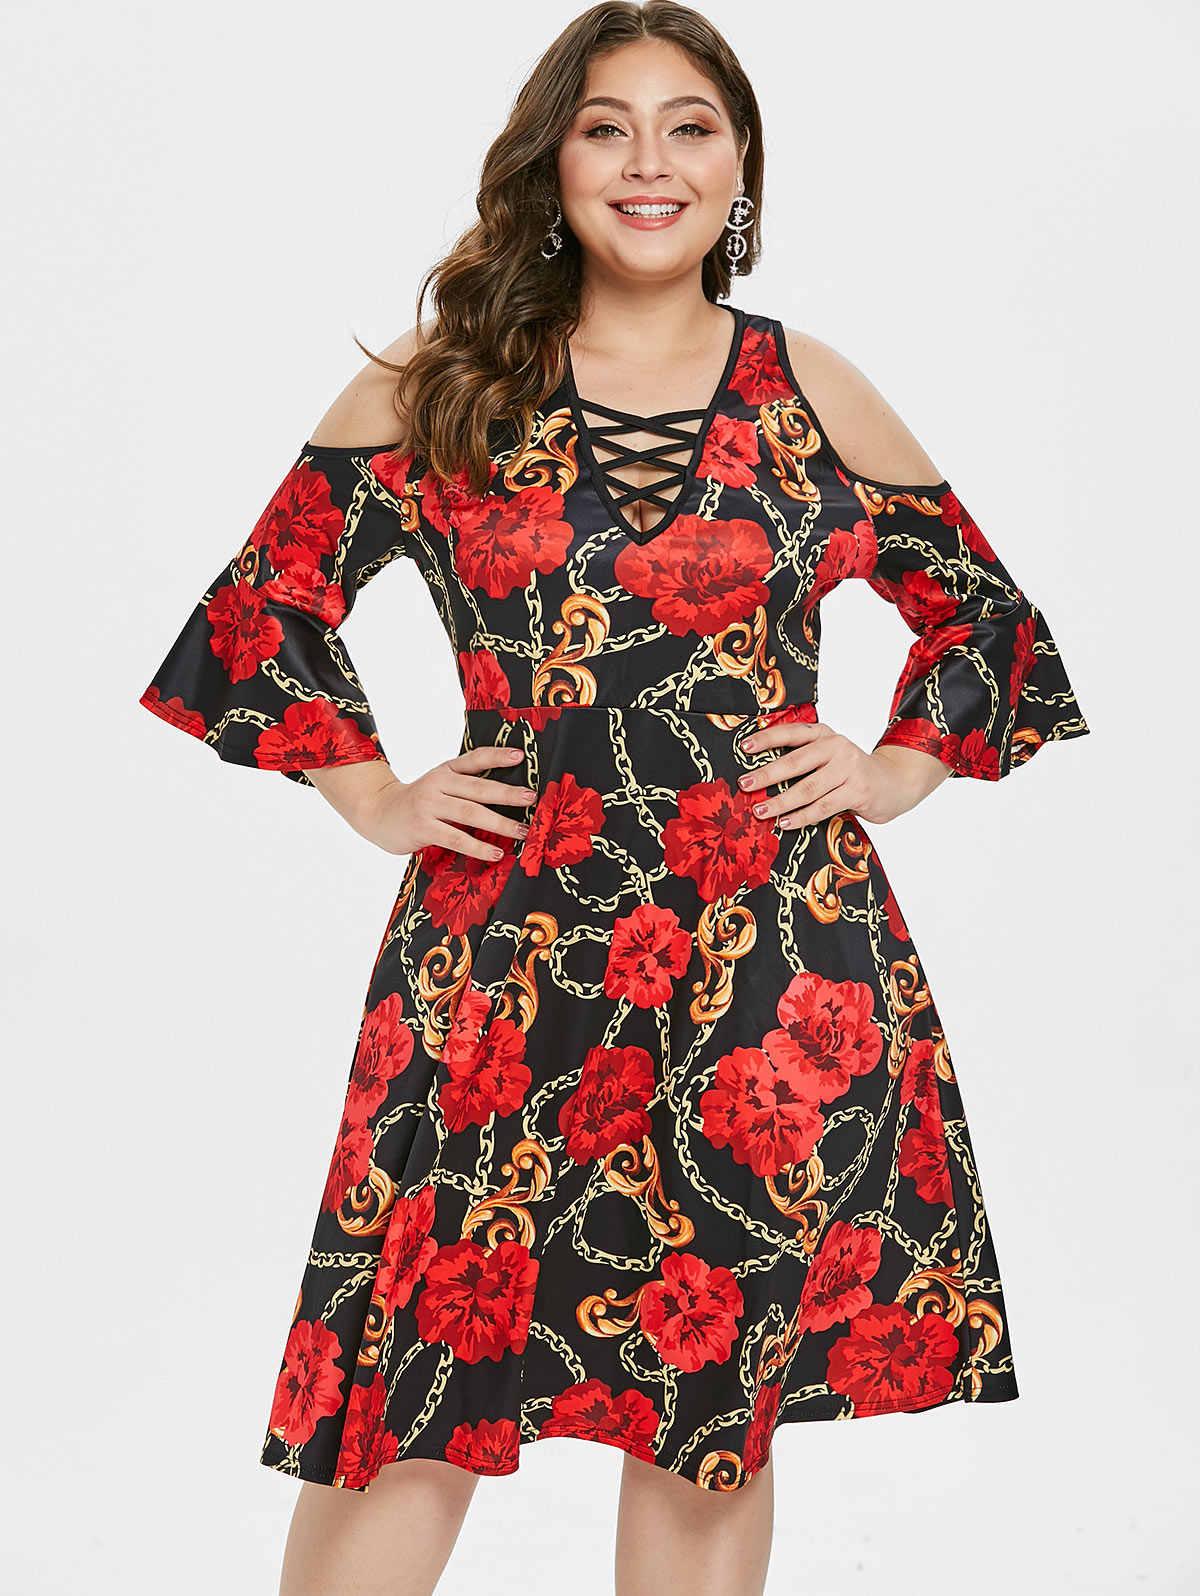 96a1421076a Wipalo Women Plus Size Floral Printed Retro Dress Flare Sleeve Cold Shoulder  Lace Up Deep V